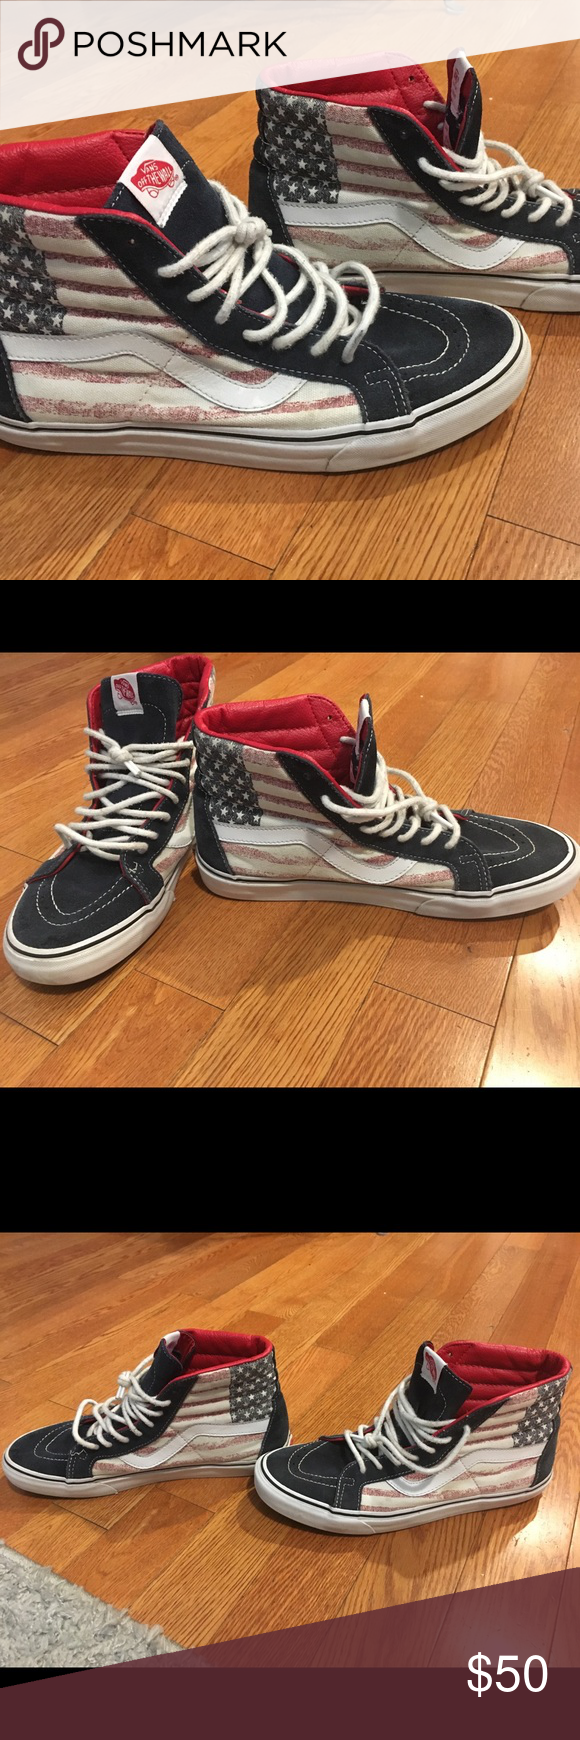 41268f04932 Vans Off The Wall Mens Size 10 American Flag Shoes Vans Off The Wall Size 10